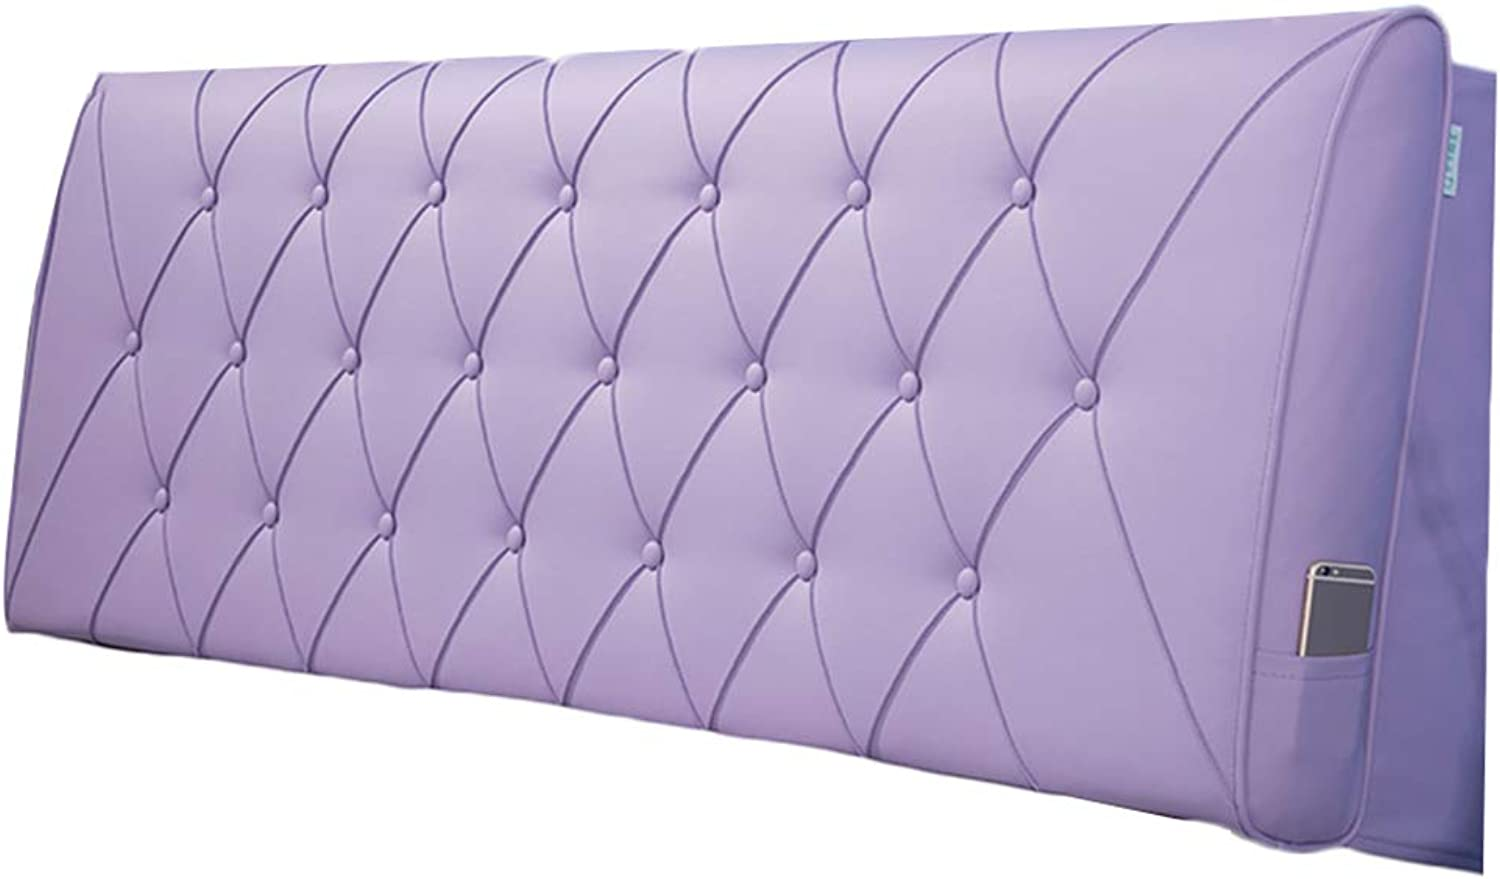 WENZHE Upholstered Fabric Headboard Bedside Cushion Pads Cover Bed Wedges Backrest Waist Pad PU Pillow Home Bedroom Waist Belt Soft Case, 5 colors (color   C, Size   90x60x11cm)